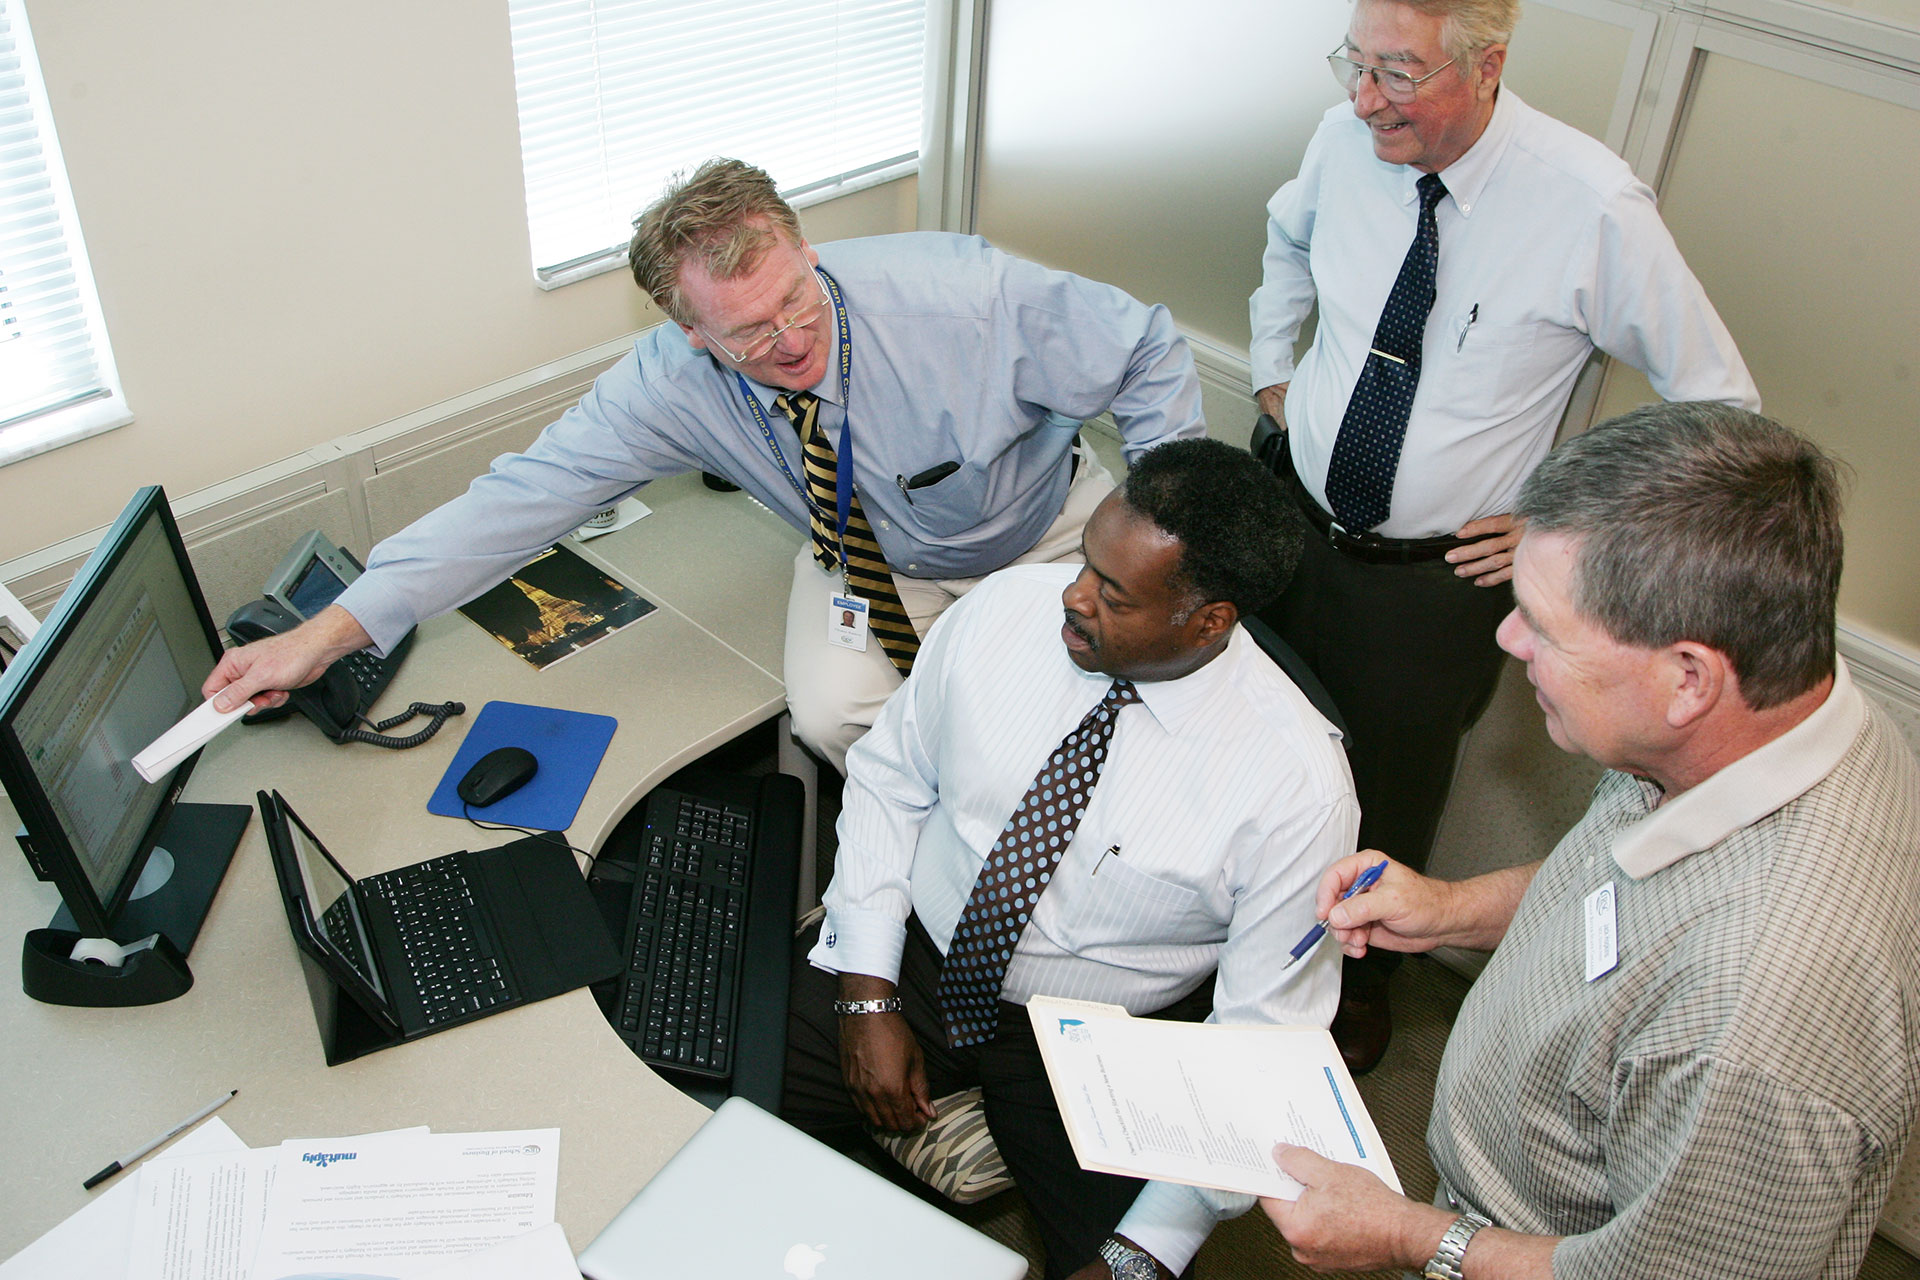 Tom Kindred, regional director of the Florida SBDC, and consultants help a client at the EDI